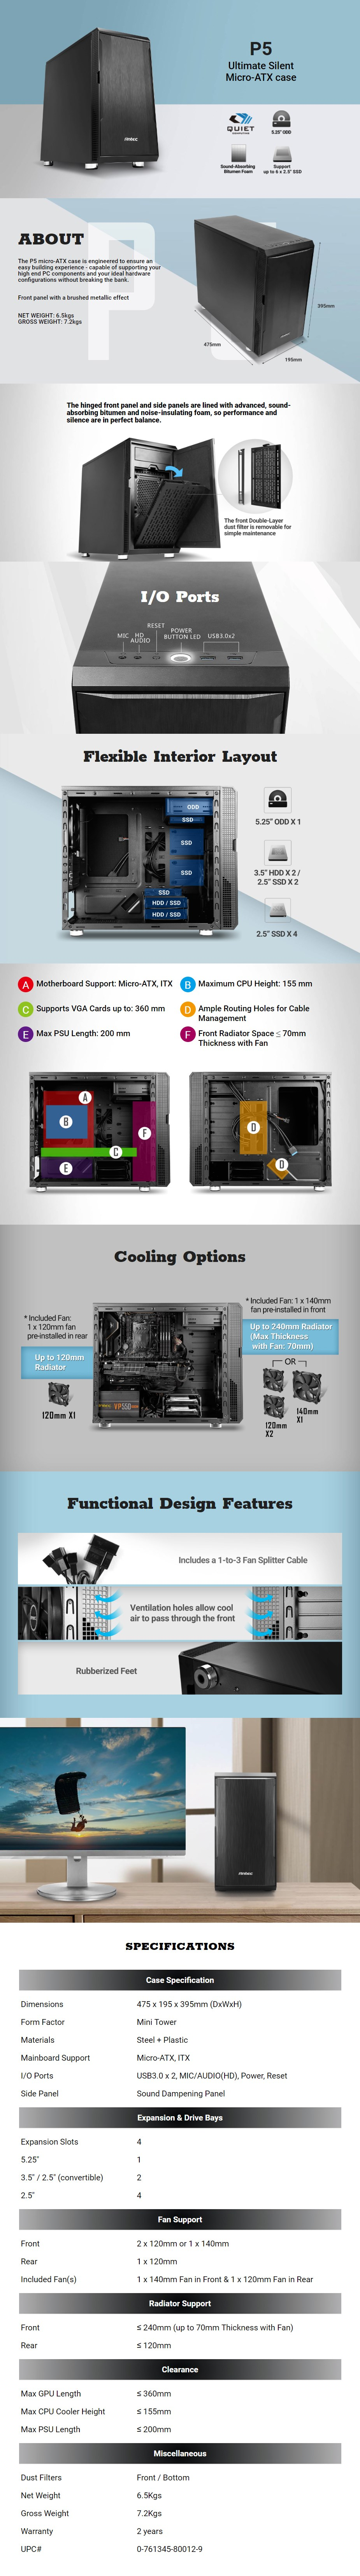 Antec P5 Ultimate Silent Mini-Tower Micro-ATX Case - Desktop Overview 1